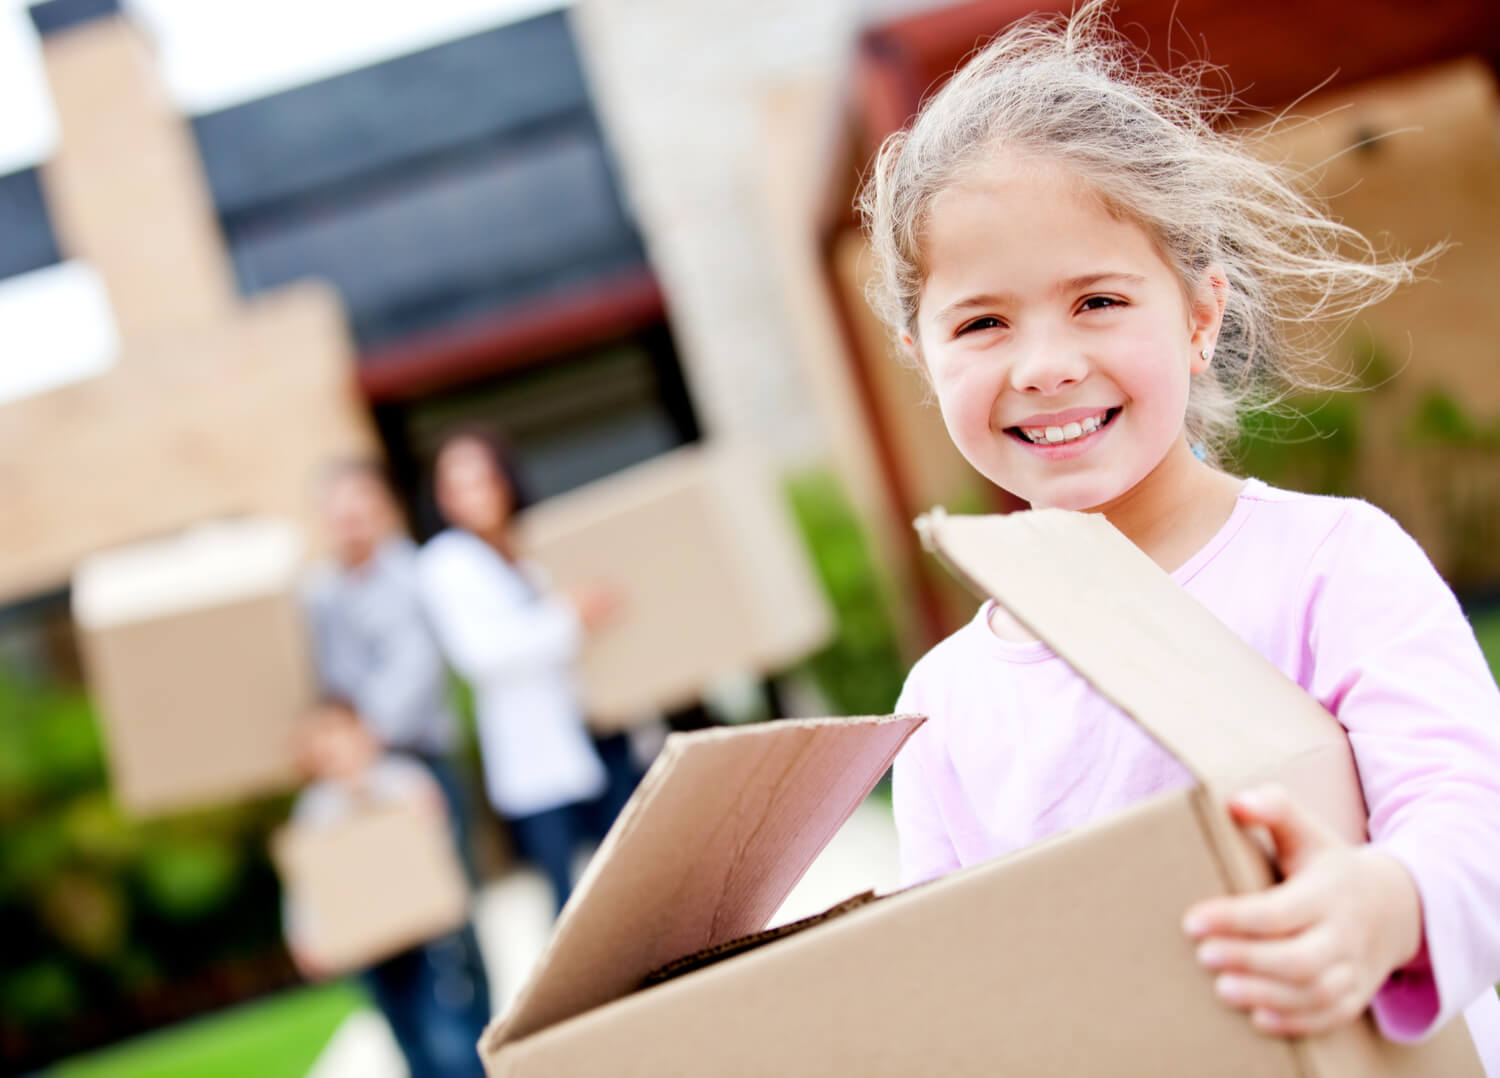 Top 7 Tips for Moving With Kids